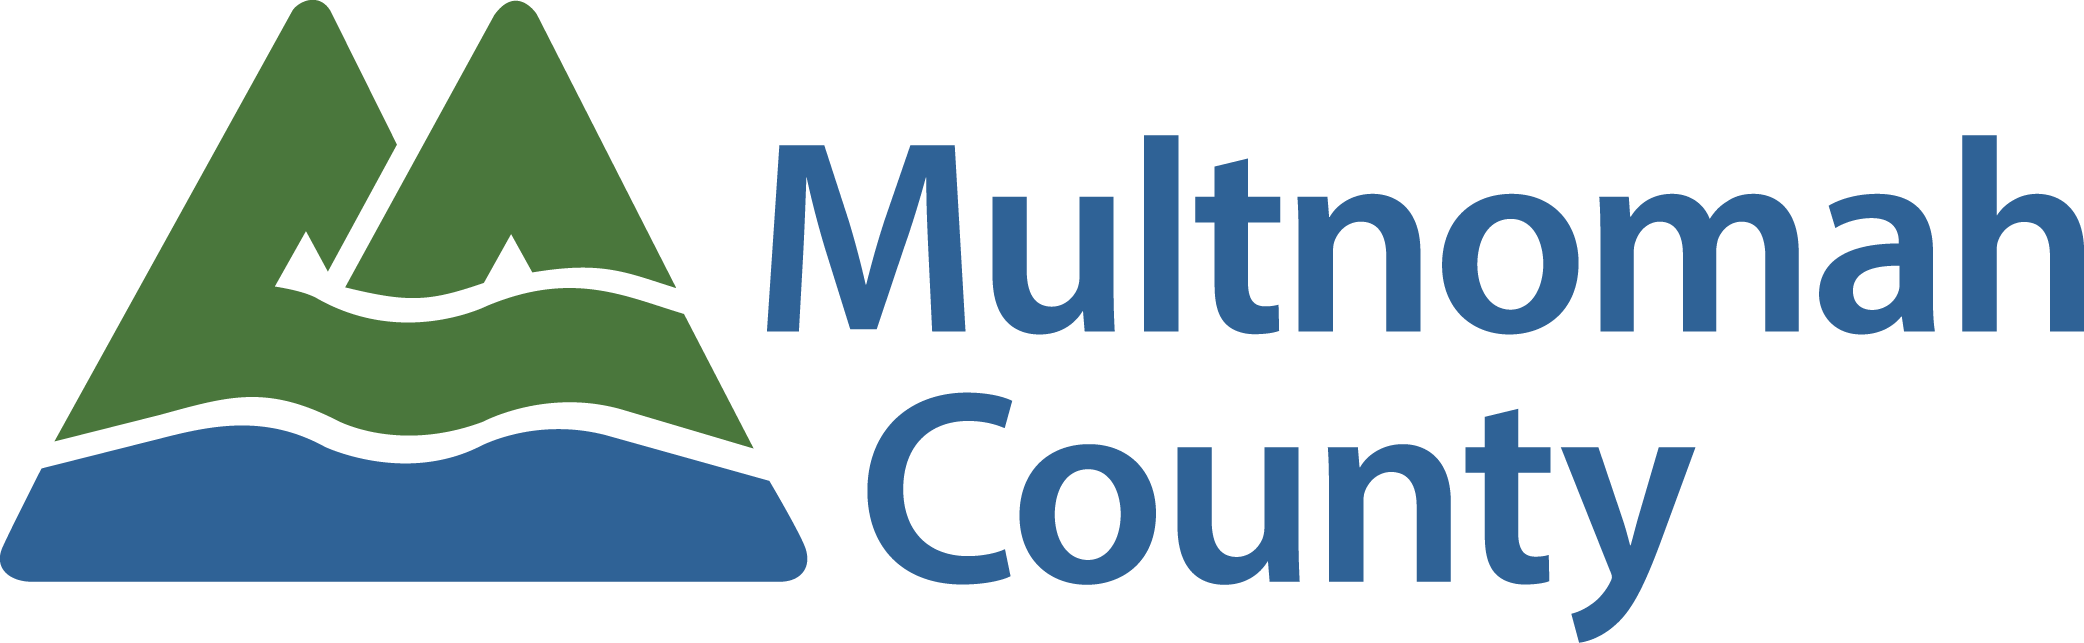 Multnomah county logo with green mountains graphic